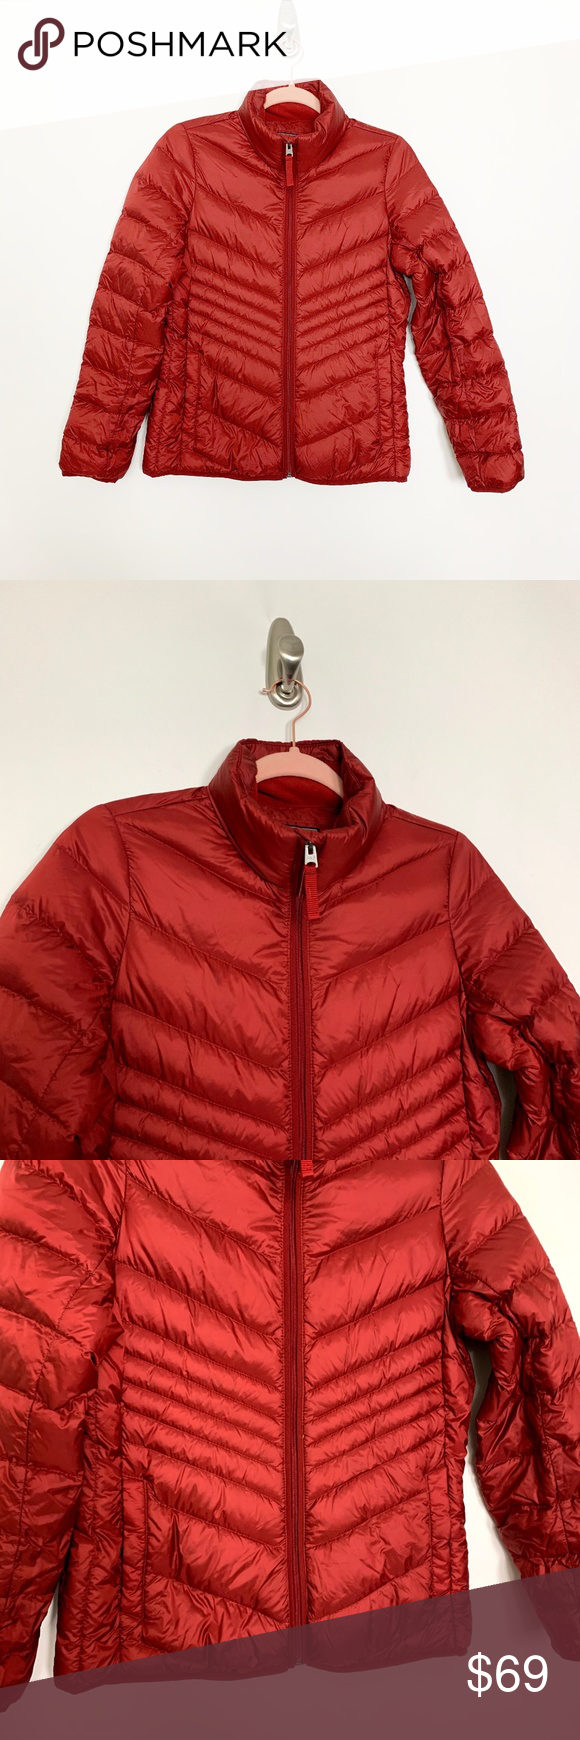 Abercrombie Fitch Puffer Jacket Red Small 2986 Brand Abercrombie Fitch Buyer Women S Item Jacke Red Jacket Abercrombie And Fitch Jackets Clothes Design [ 1740 x 580 Pixel ]